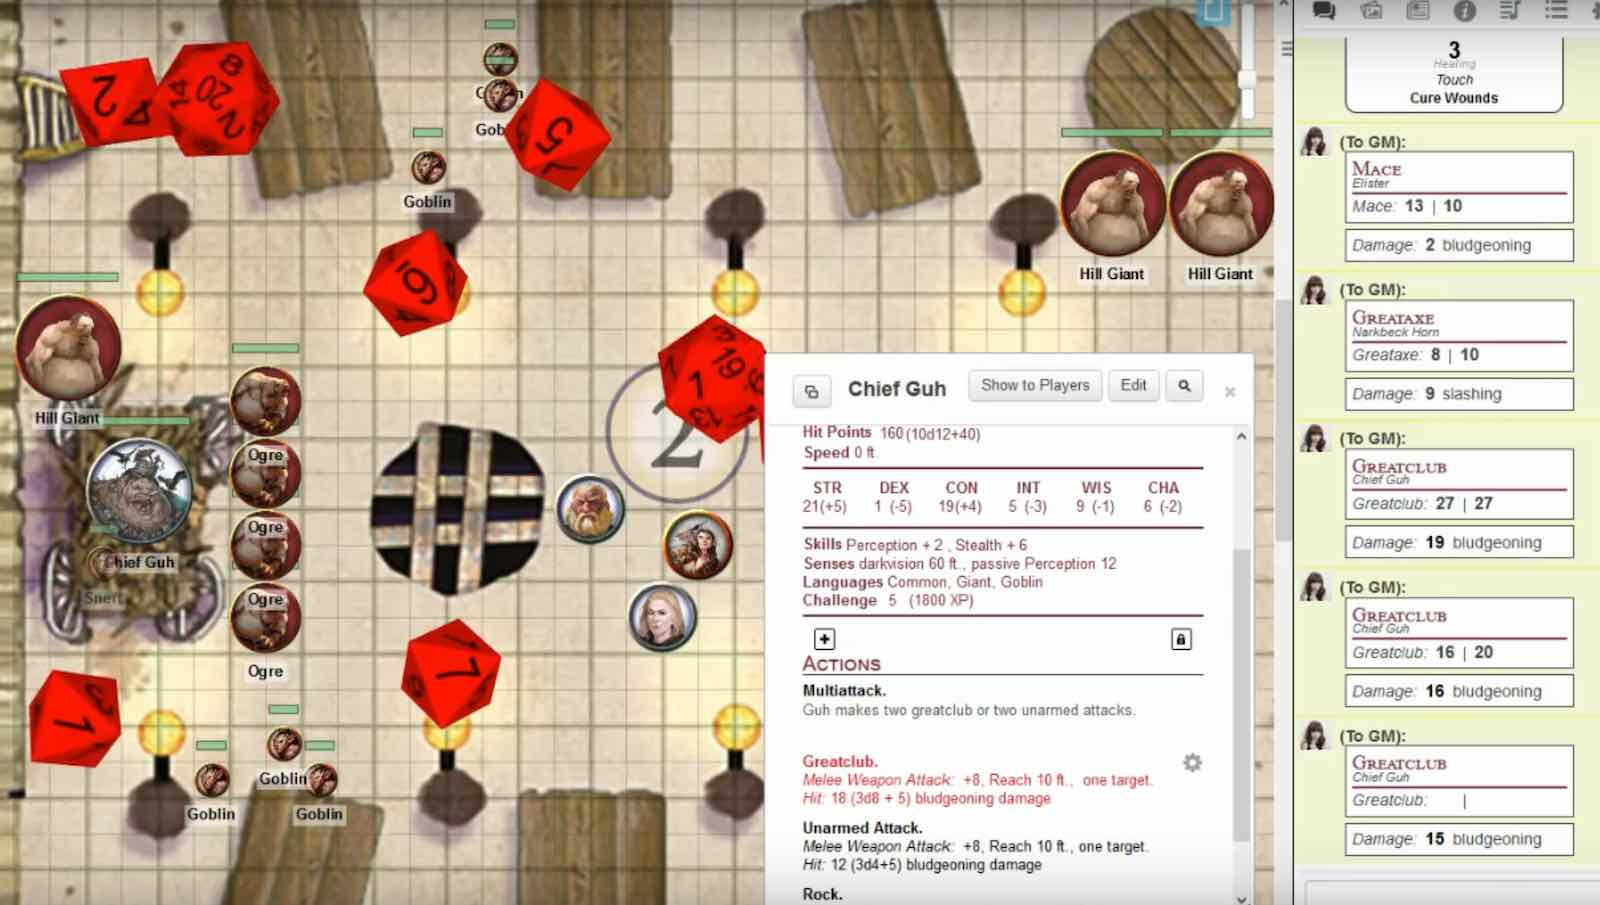 Here S How To Play Dungeons And Dragons Online This Quarantine Film Daily